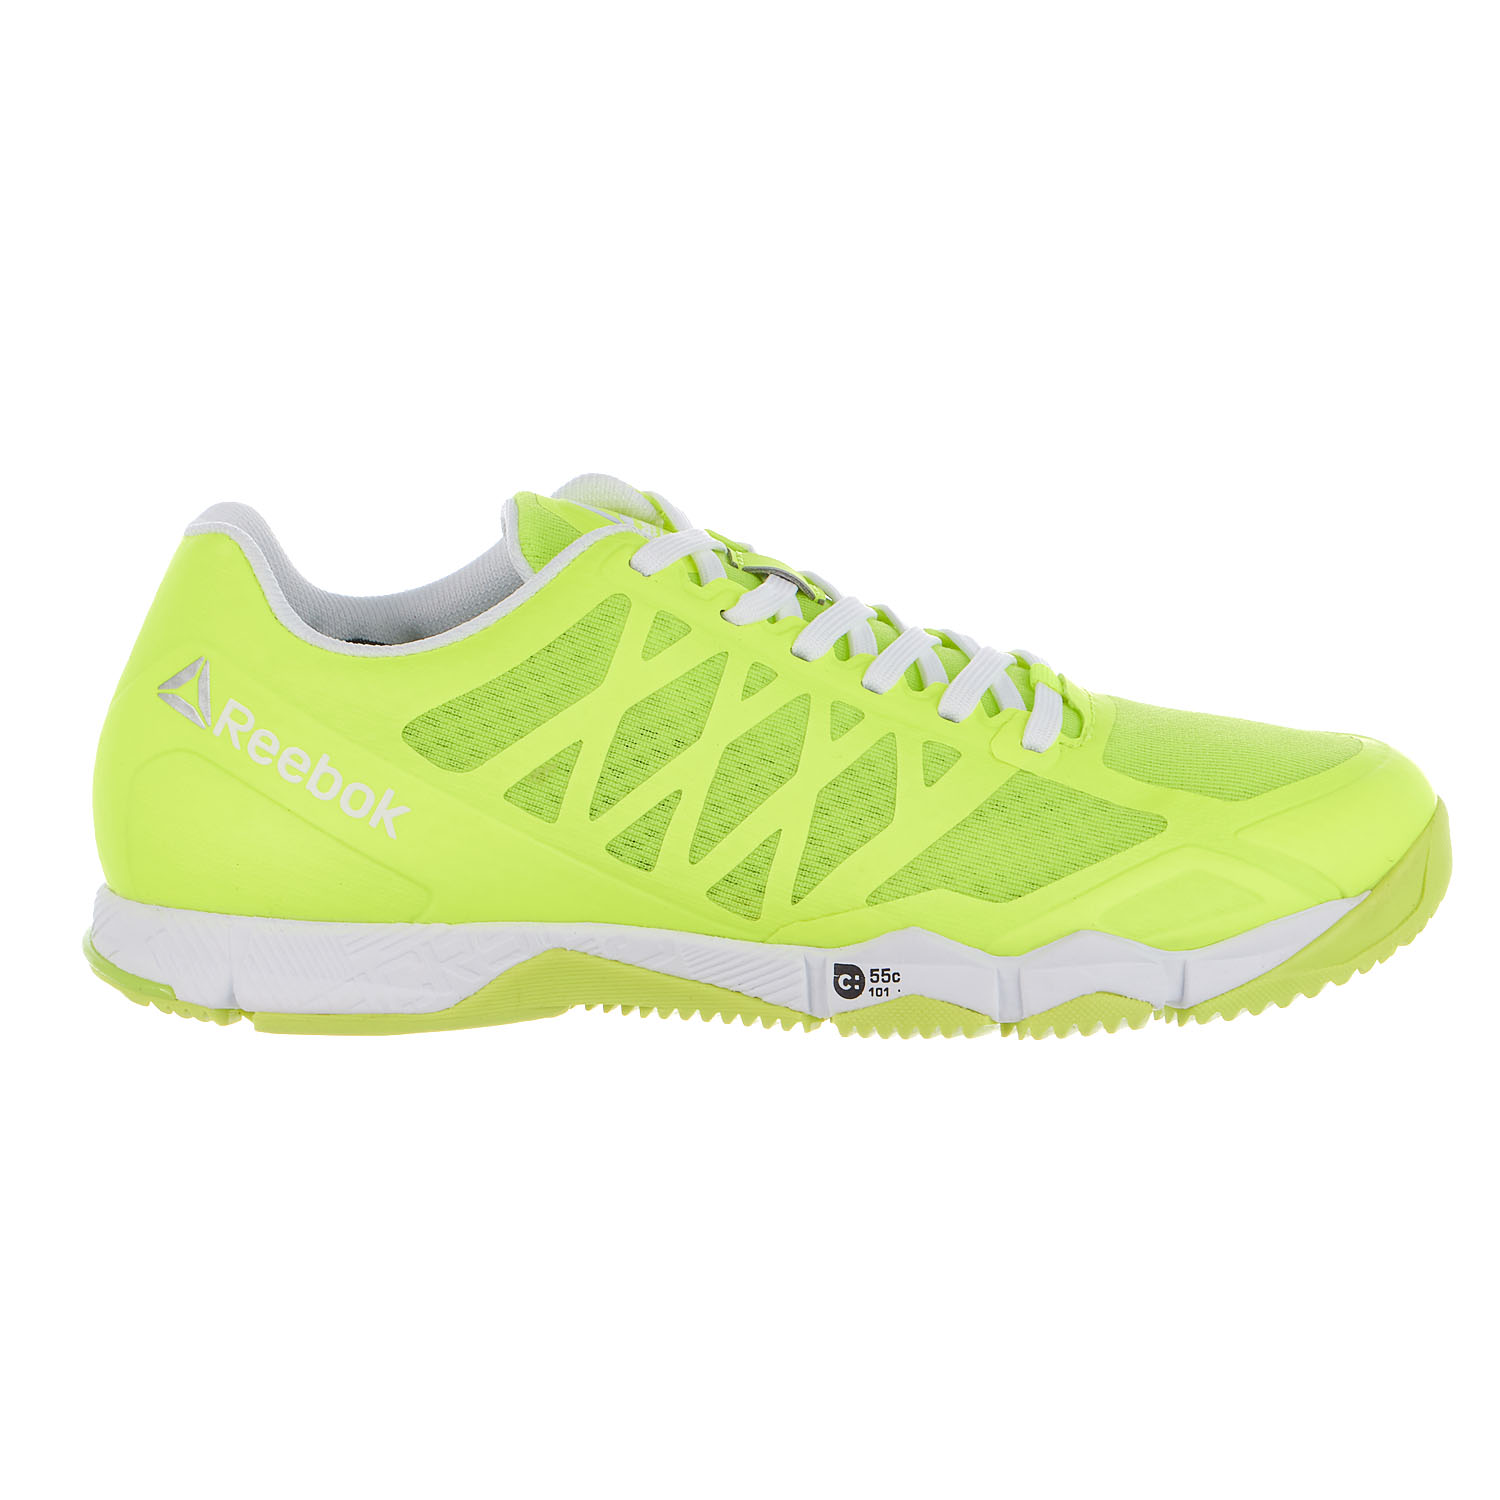 889aee663365 Reebok Crossfit Speed TR Cross-Trainer Shoe - Womens - Walmart.com